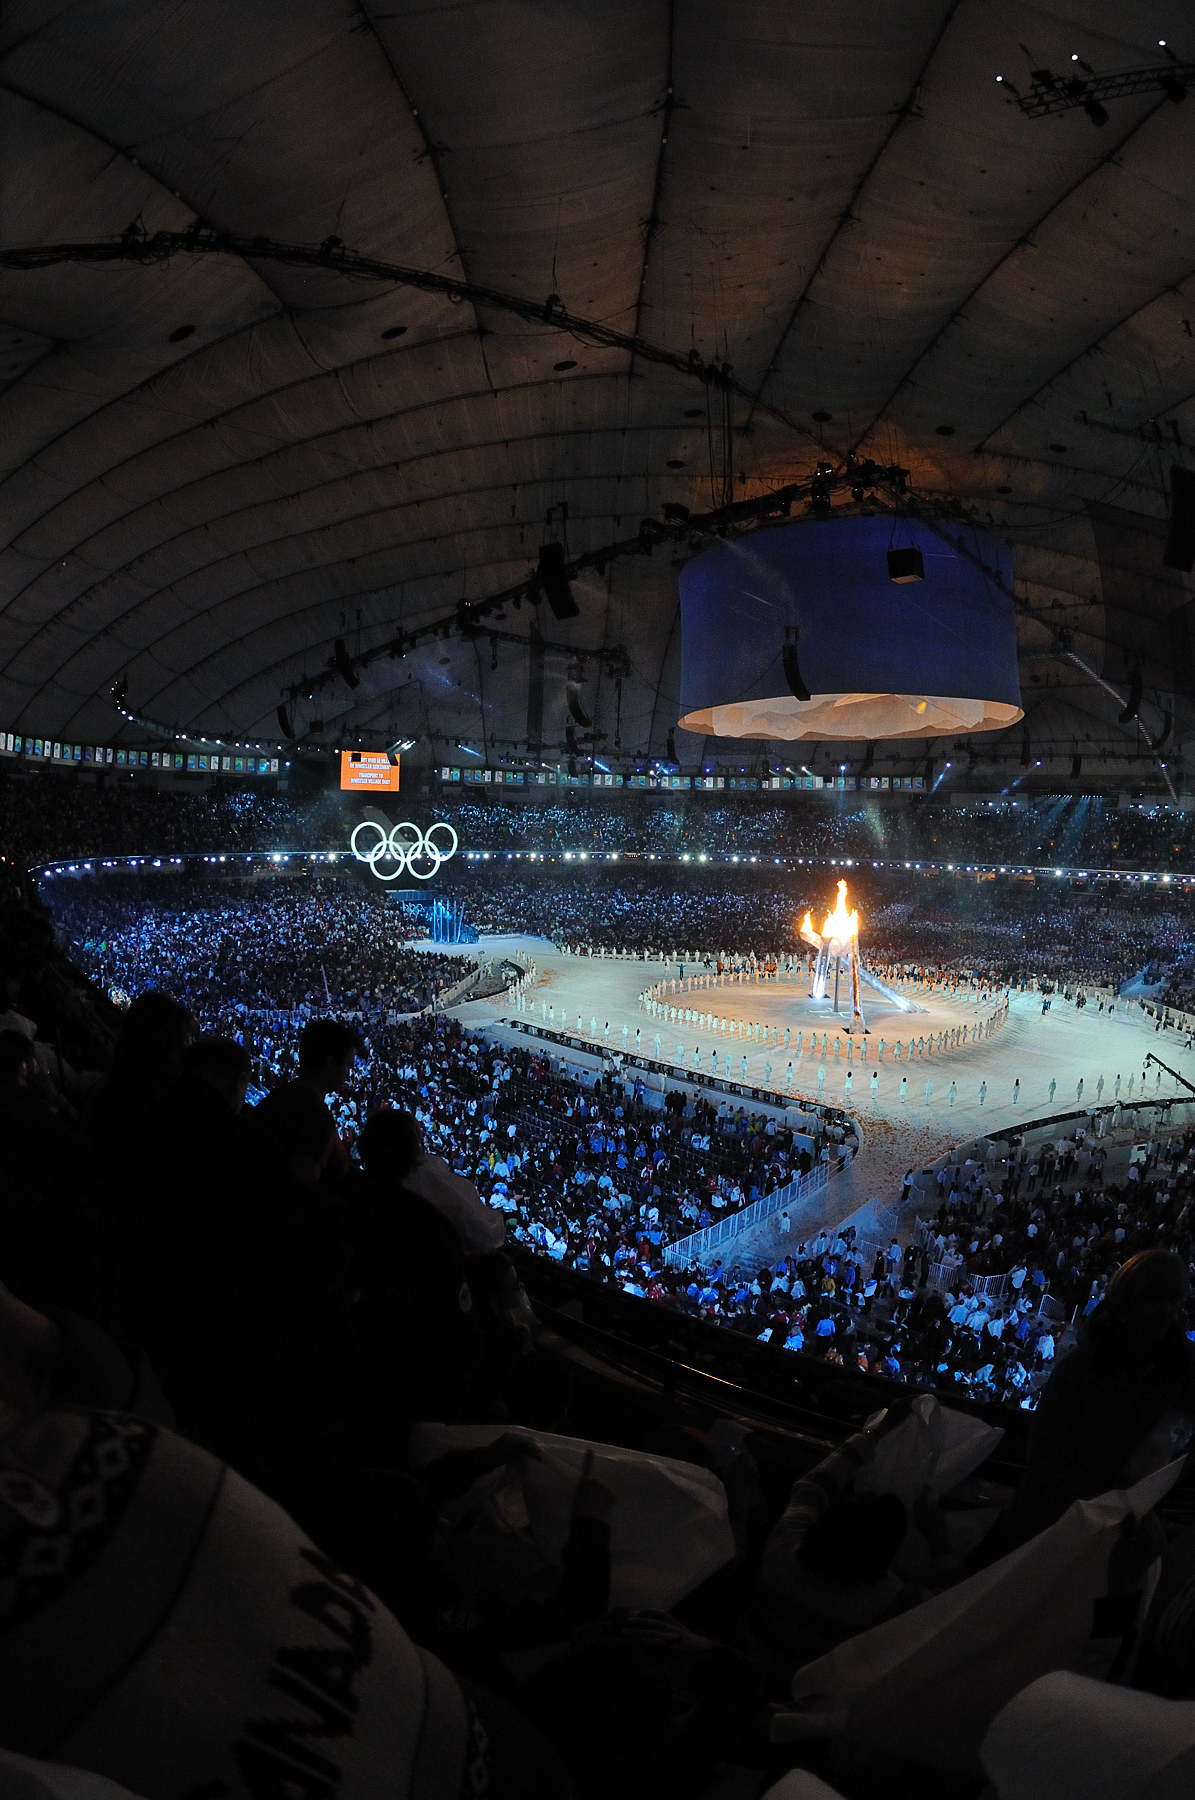 The Athletes` start to leave the building